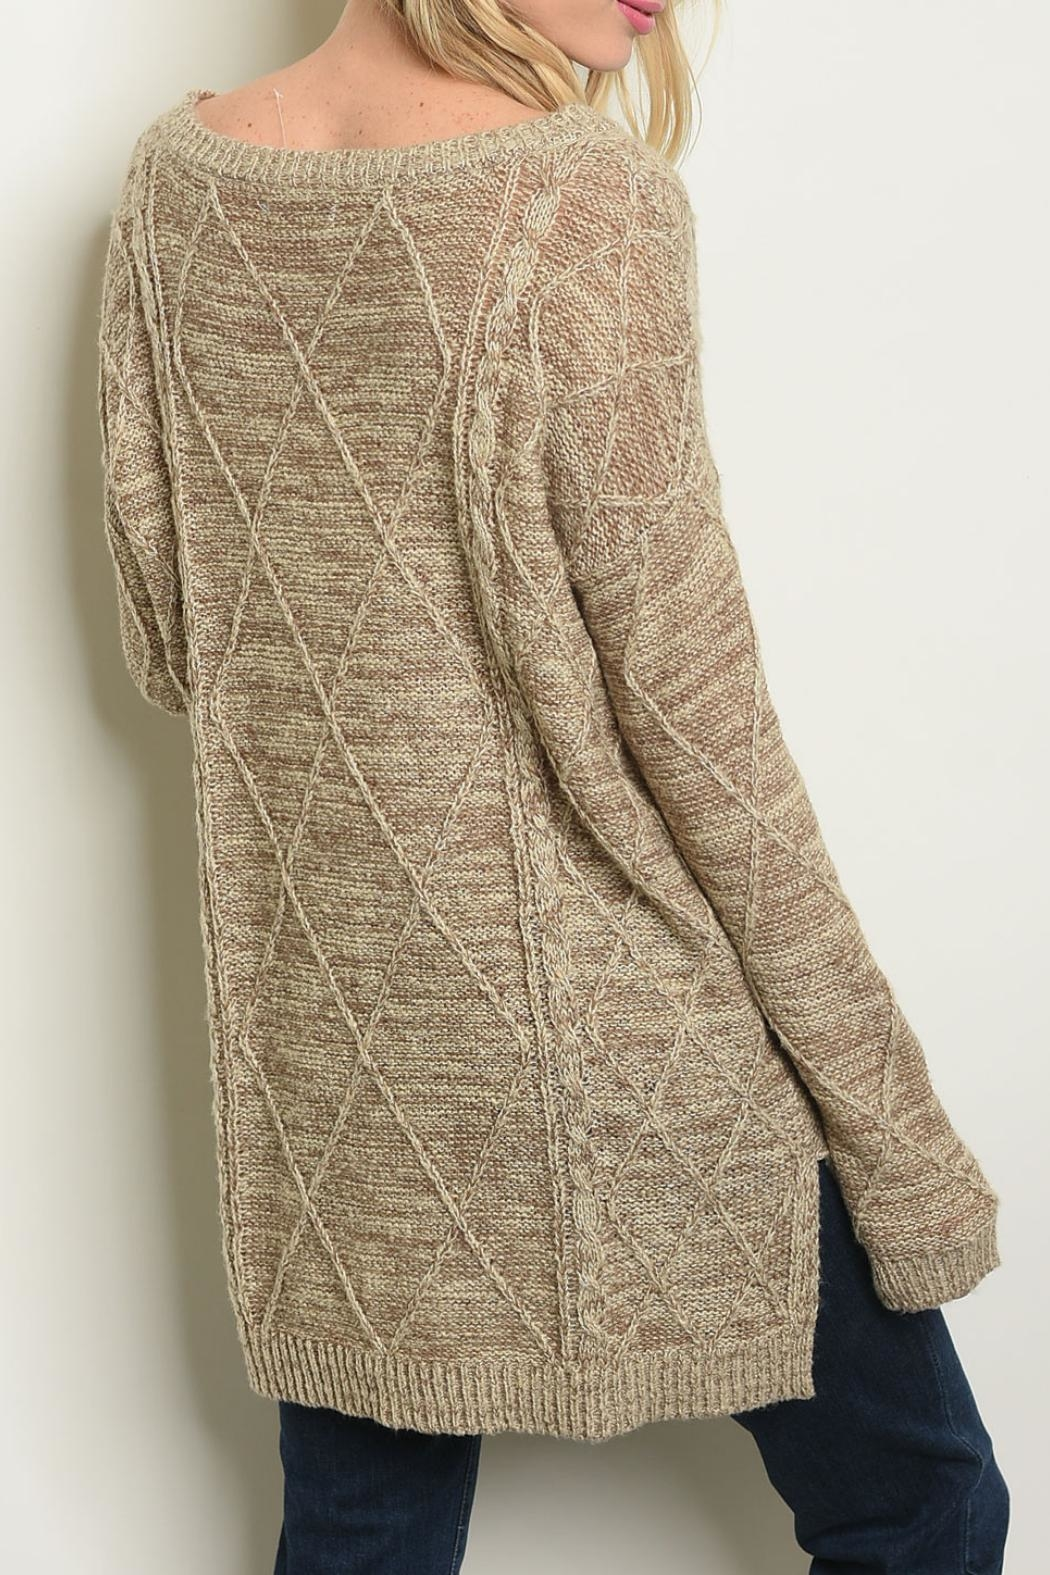 Cozy Casual Tan Sweater - Front Full Image